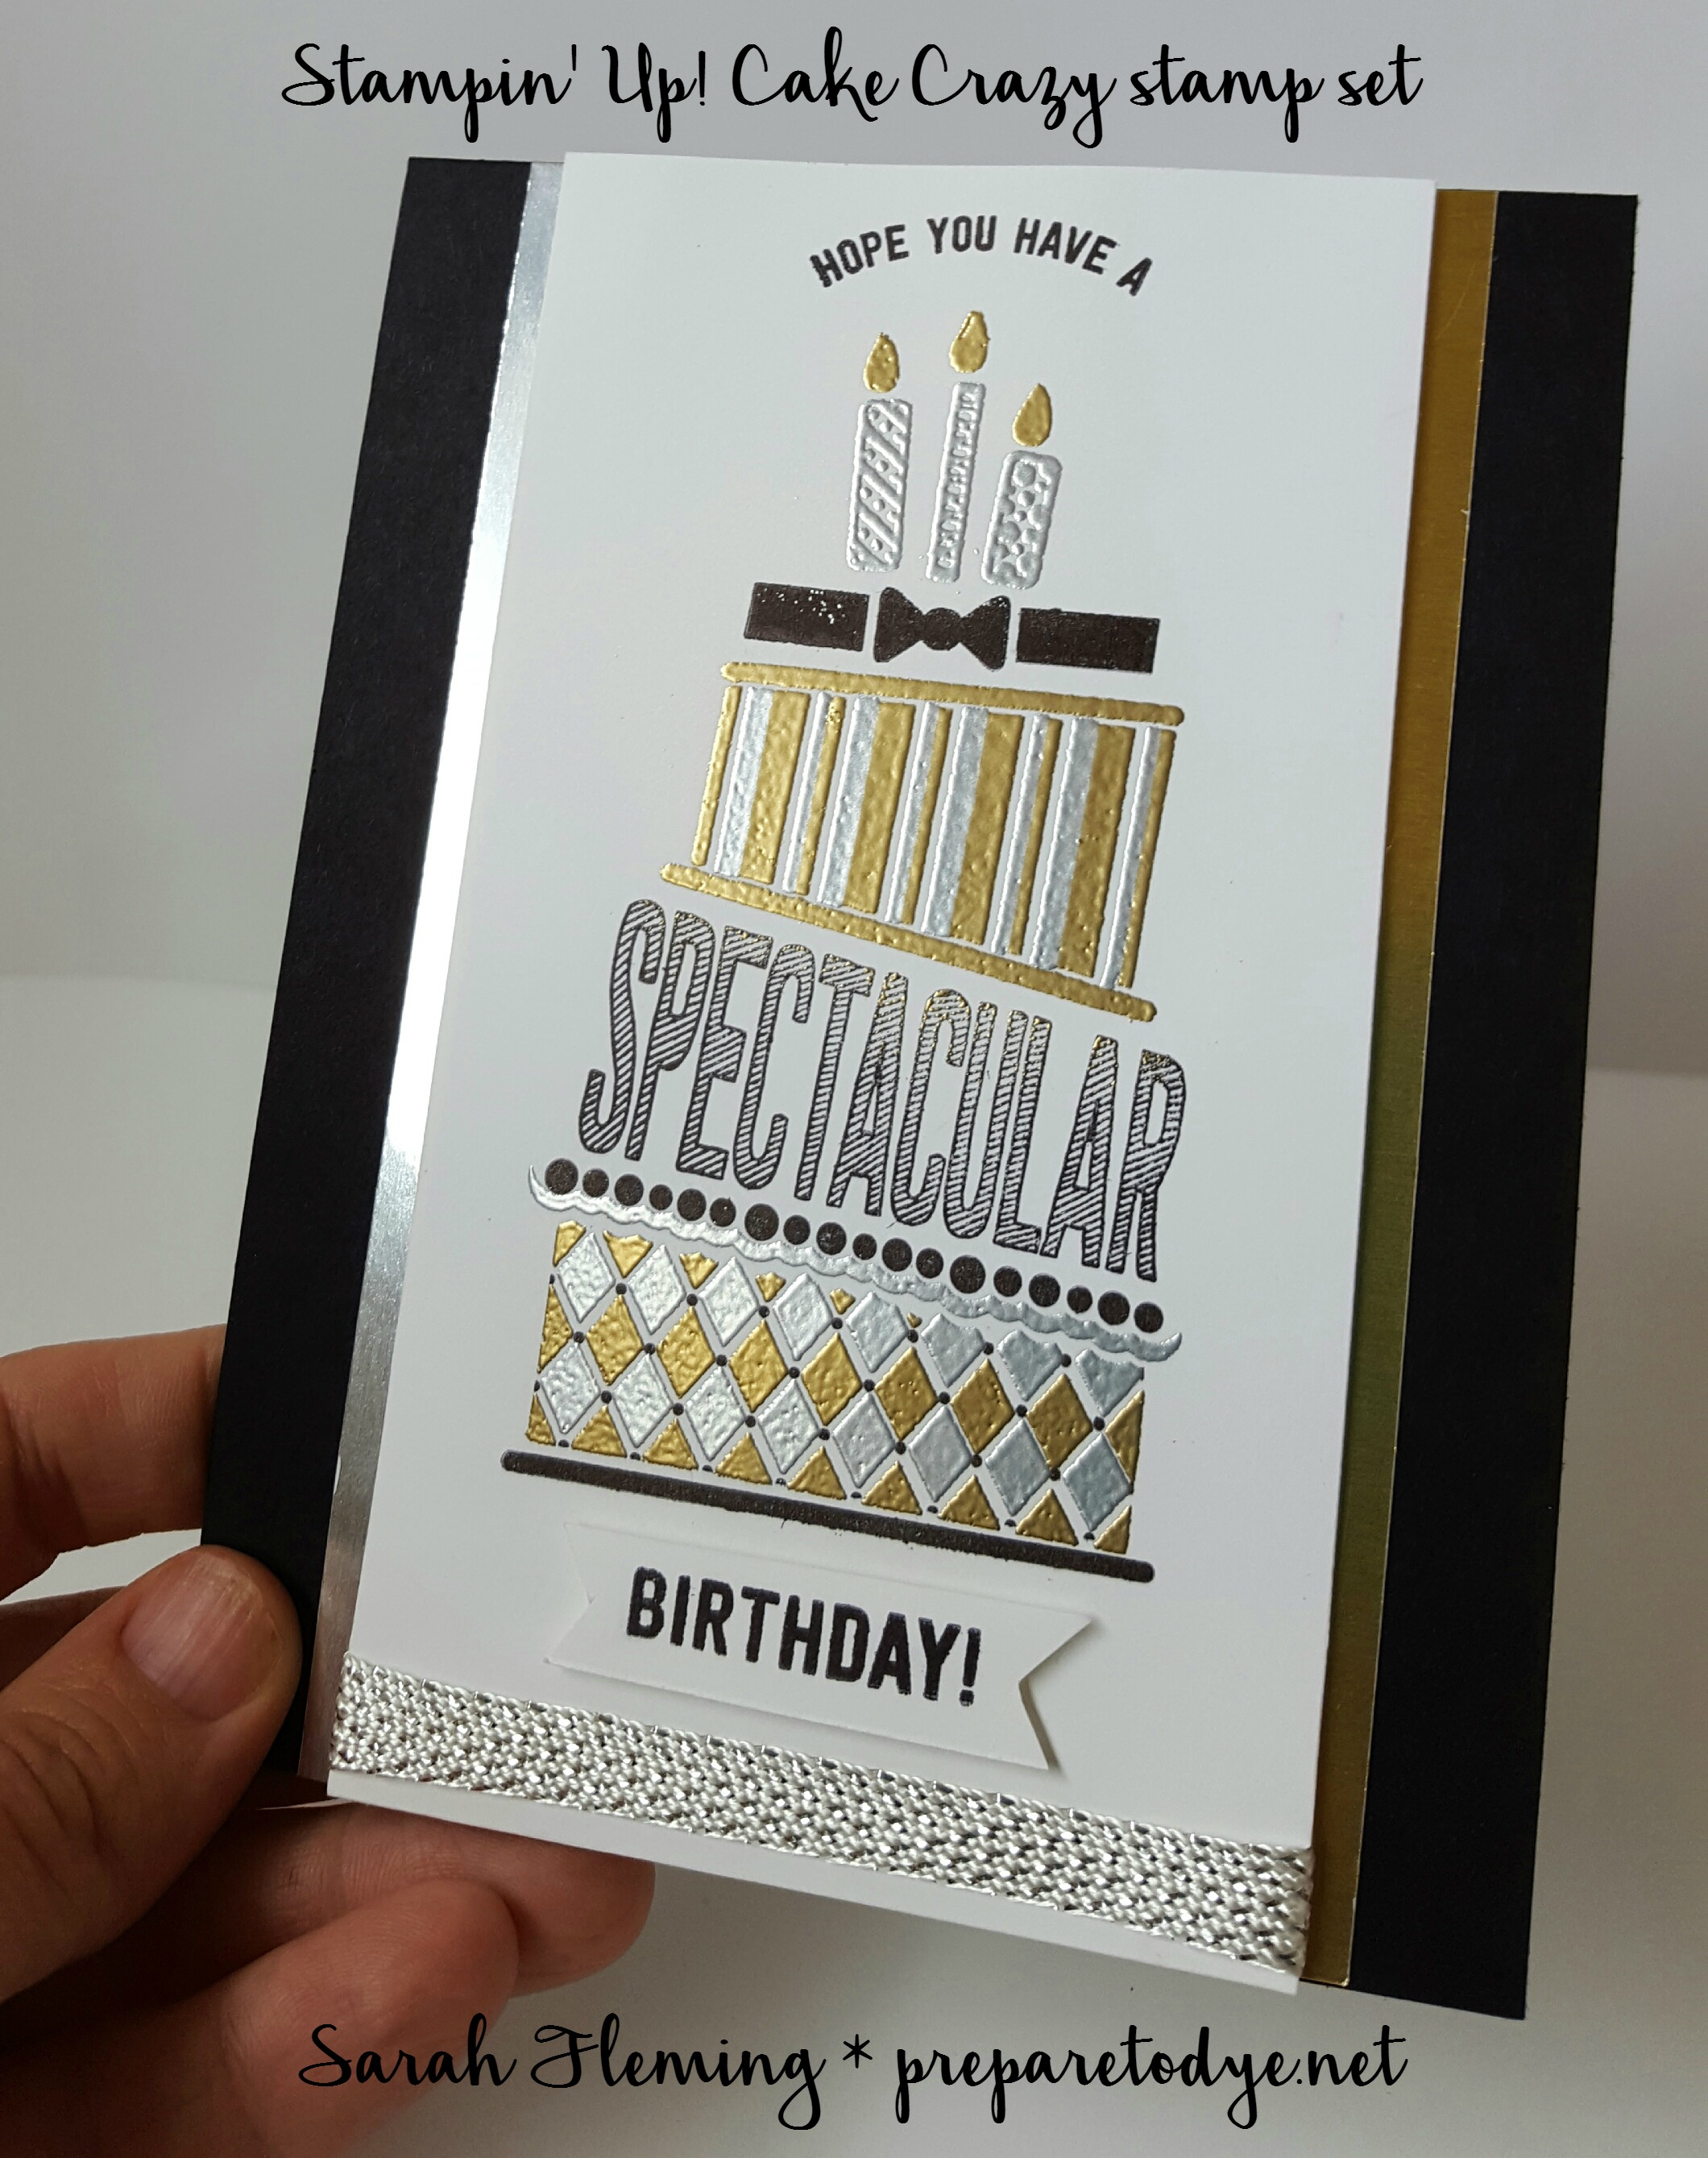 Stampin' Up! Cake Crazy black-tie card - Sarah Fleming - Prepare to Dye Papercrafts - handmade birthday card